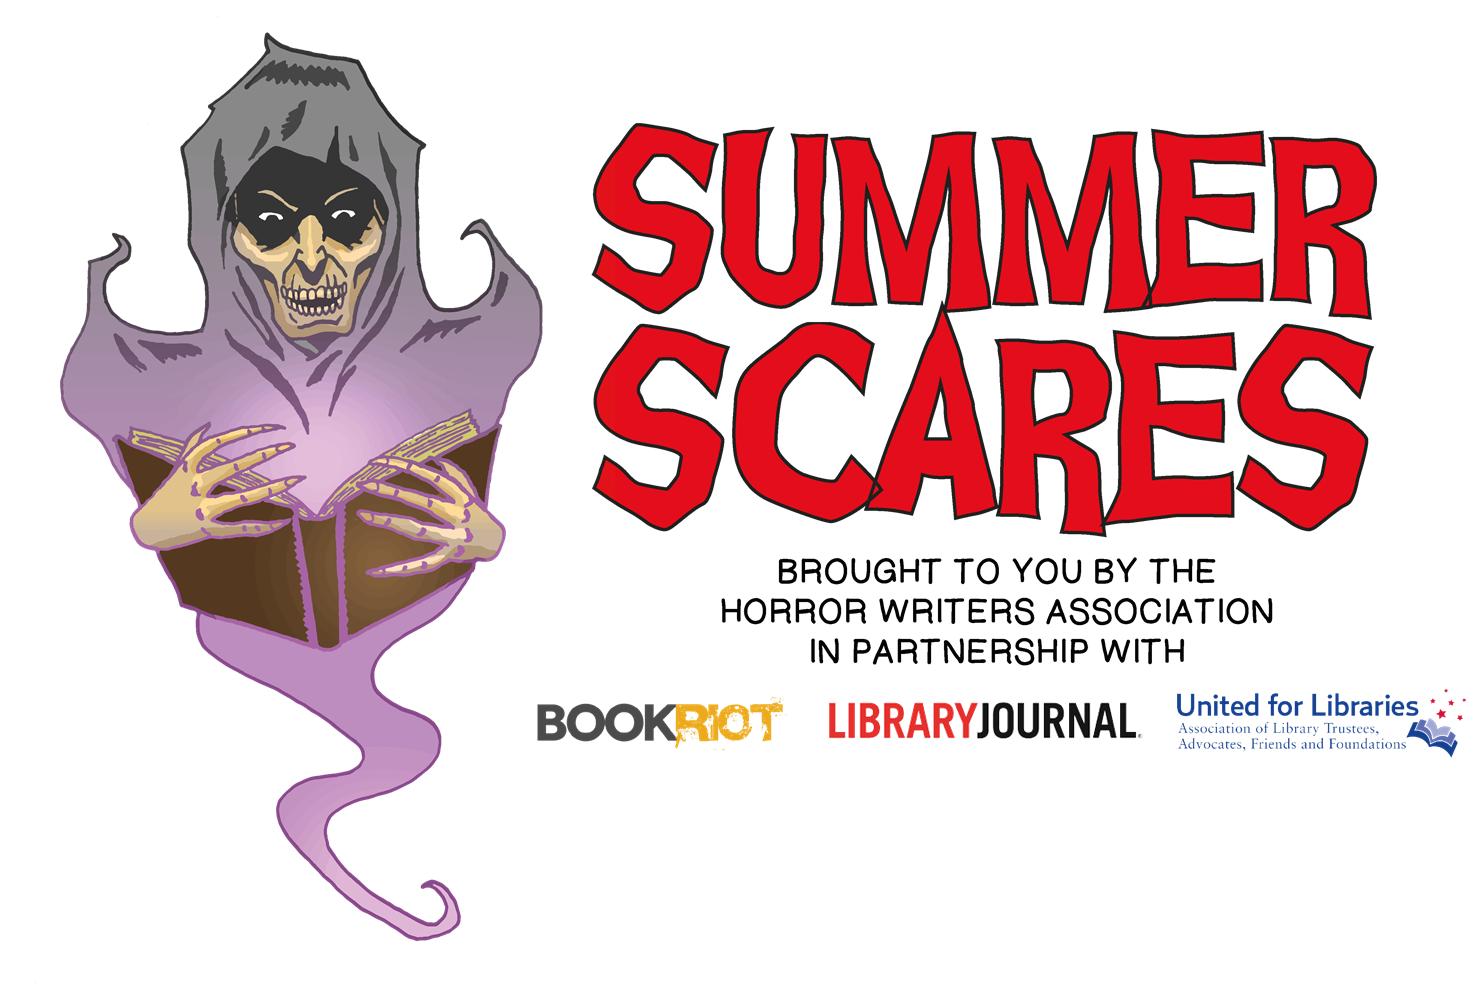 Horror Writers Association, Library Journal, & Partners Announce Second Annual Summer Scares Reading Program